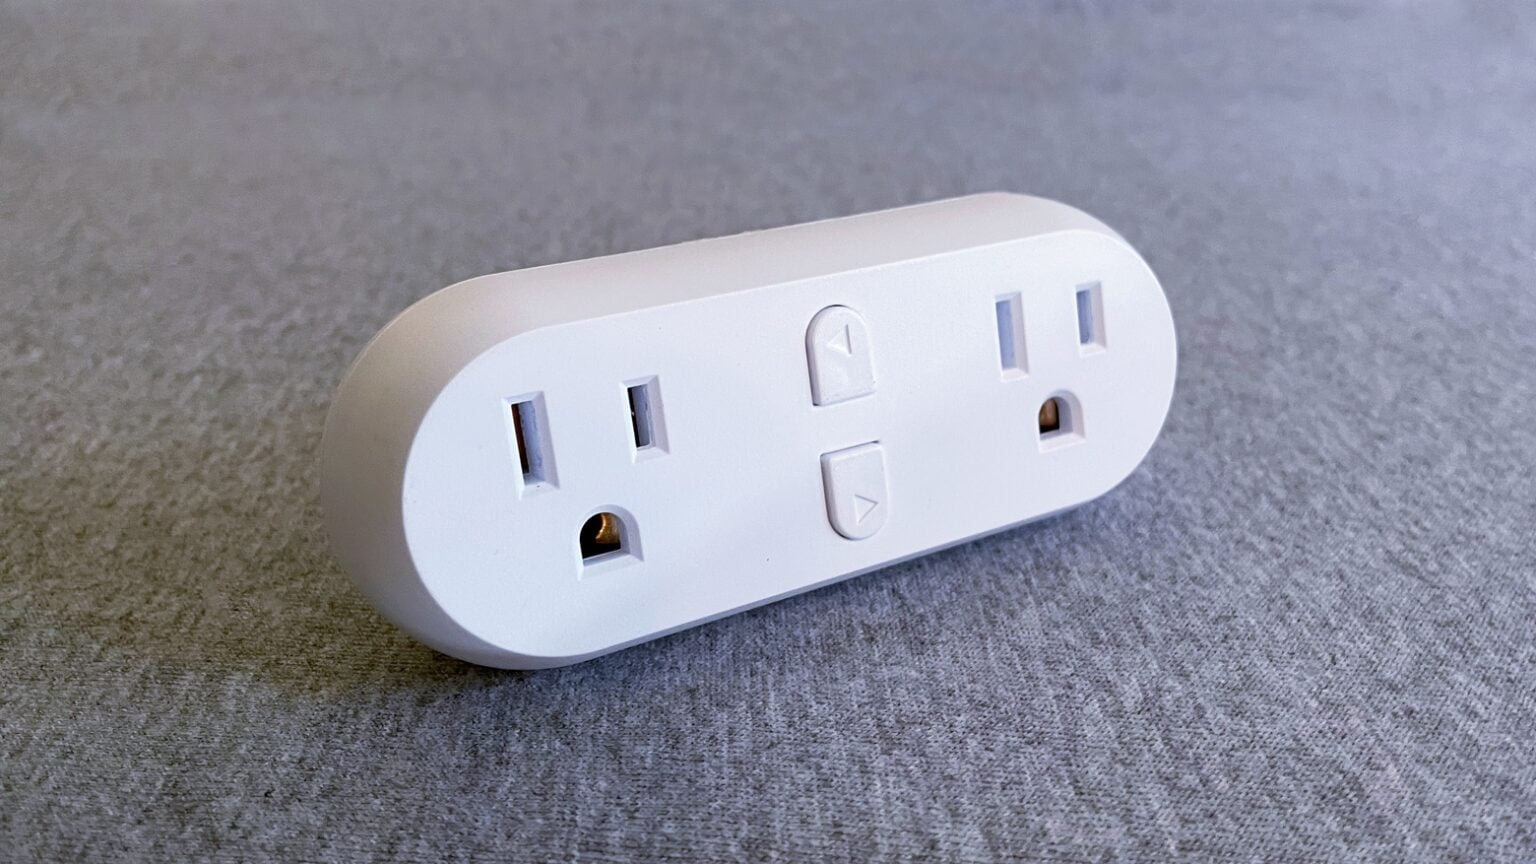 Meross Smart WiFi Plug review: Easily affordable HomeKit automation